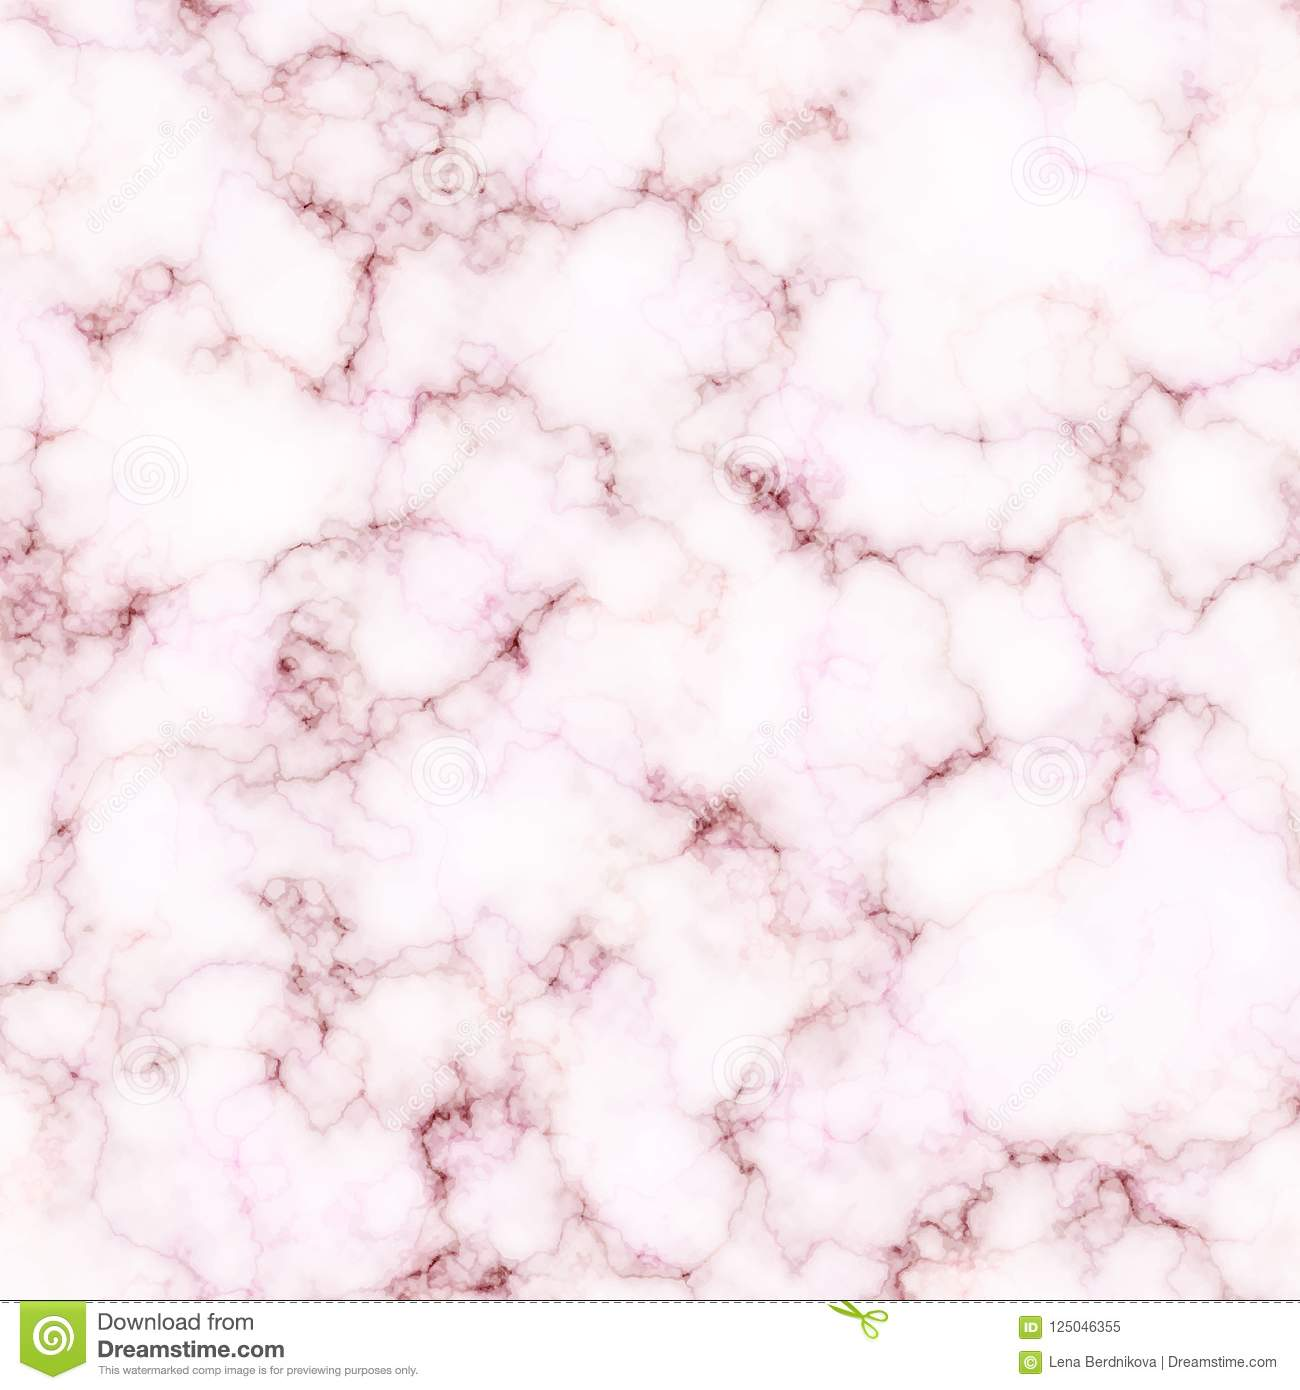 White And Pink Marble Texture Vector Background Stock Vector Illustration Of Bench Decor 125046355